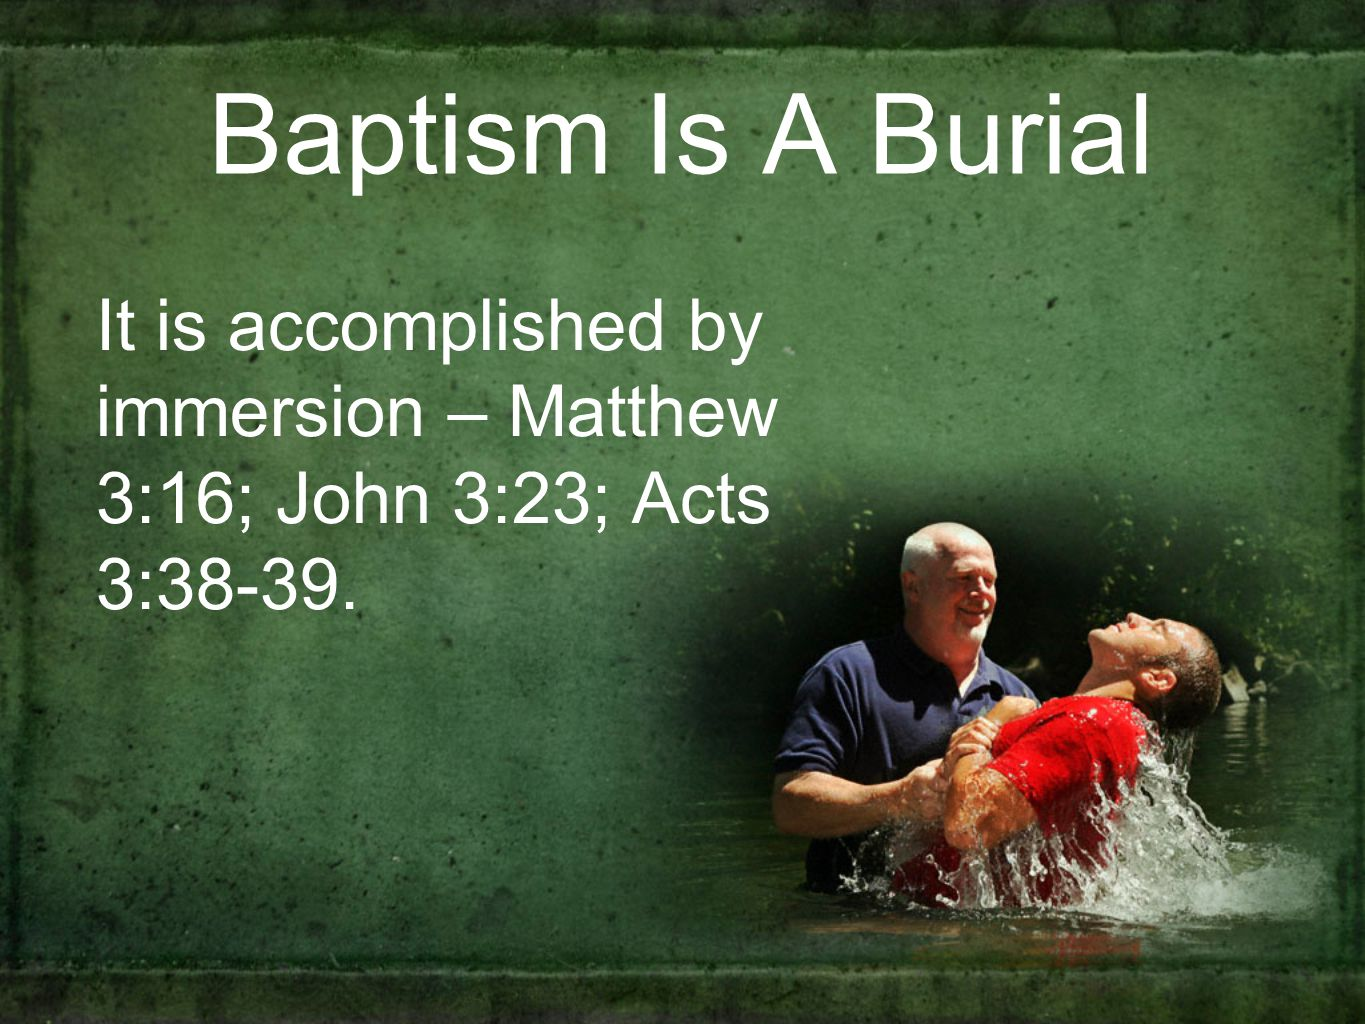 Baptism Is A Burial It is accomplished by immersion – Matthew 3:16; John 3:23; Acts 3:38-39.